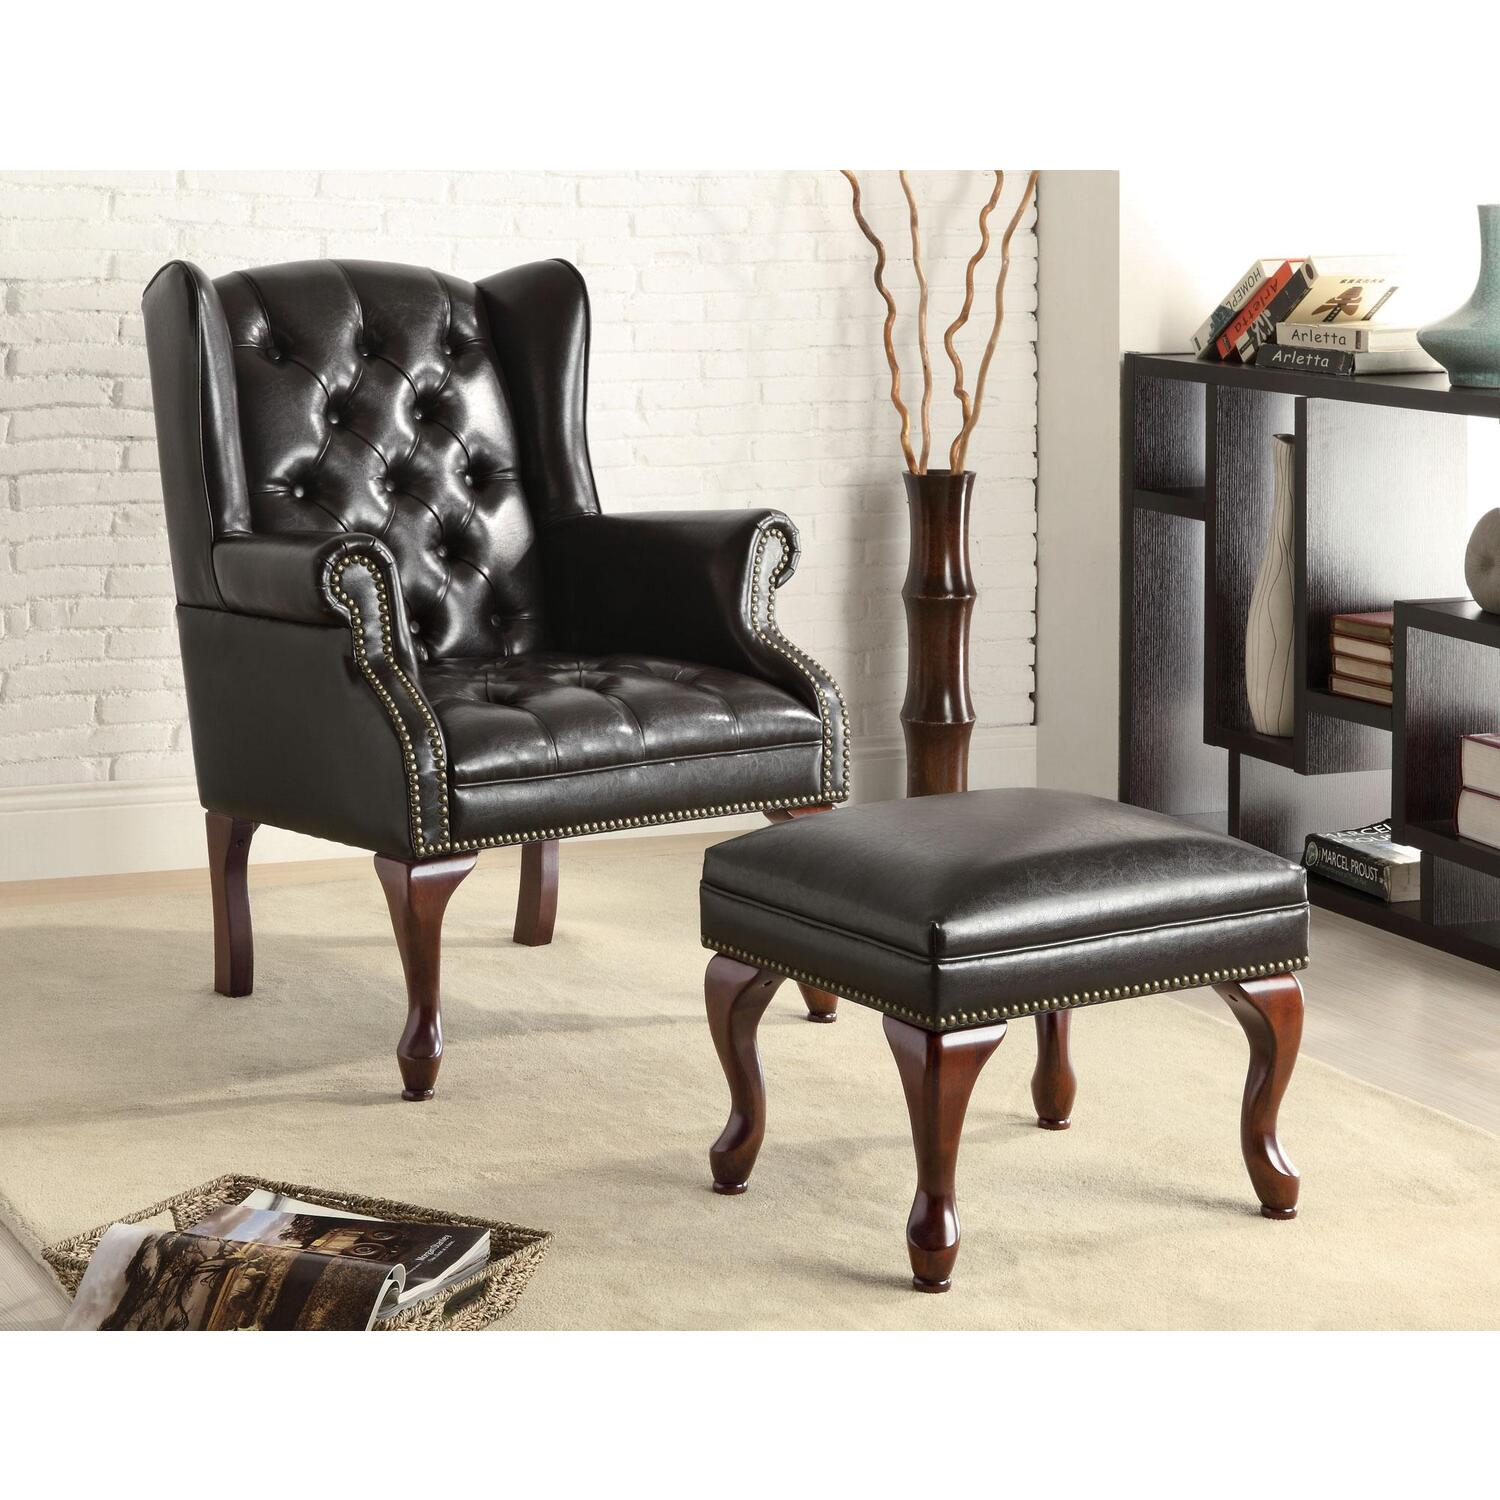 Coaster Traditional Espresso Accent Chair And Ottoman Black Traditional Espresso